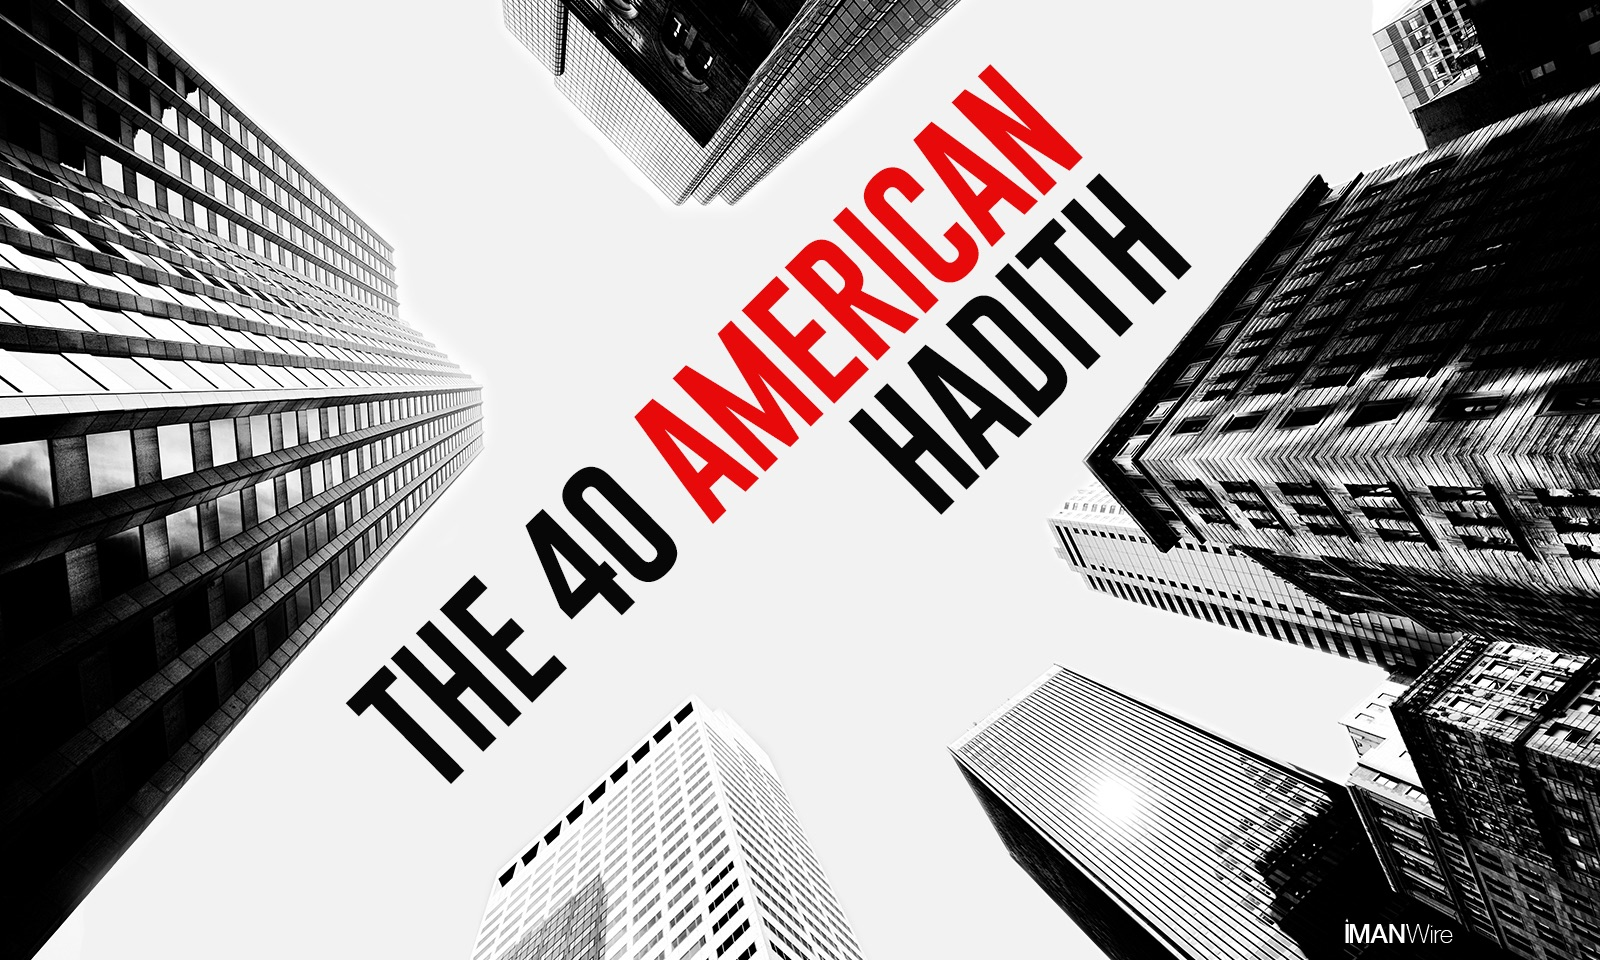 The 40 American Hadith: Finding Balance